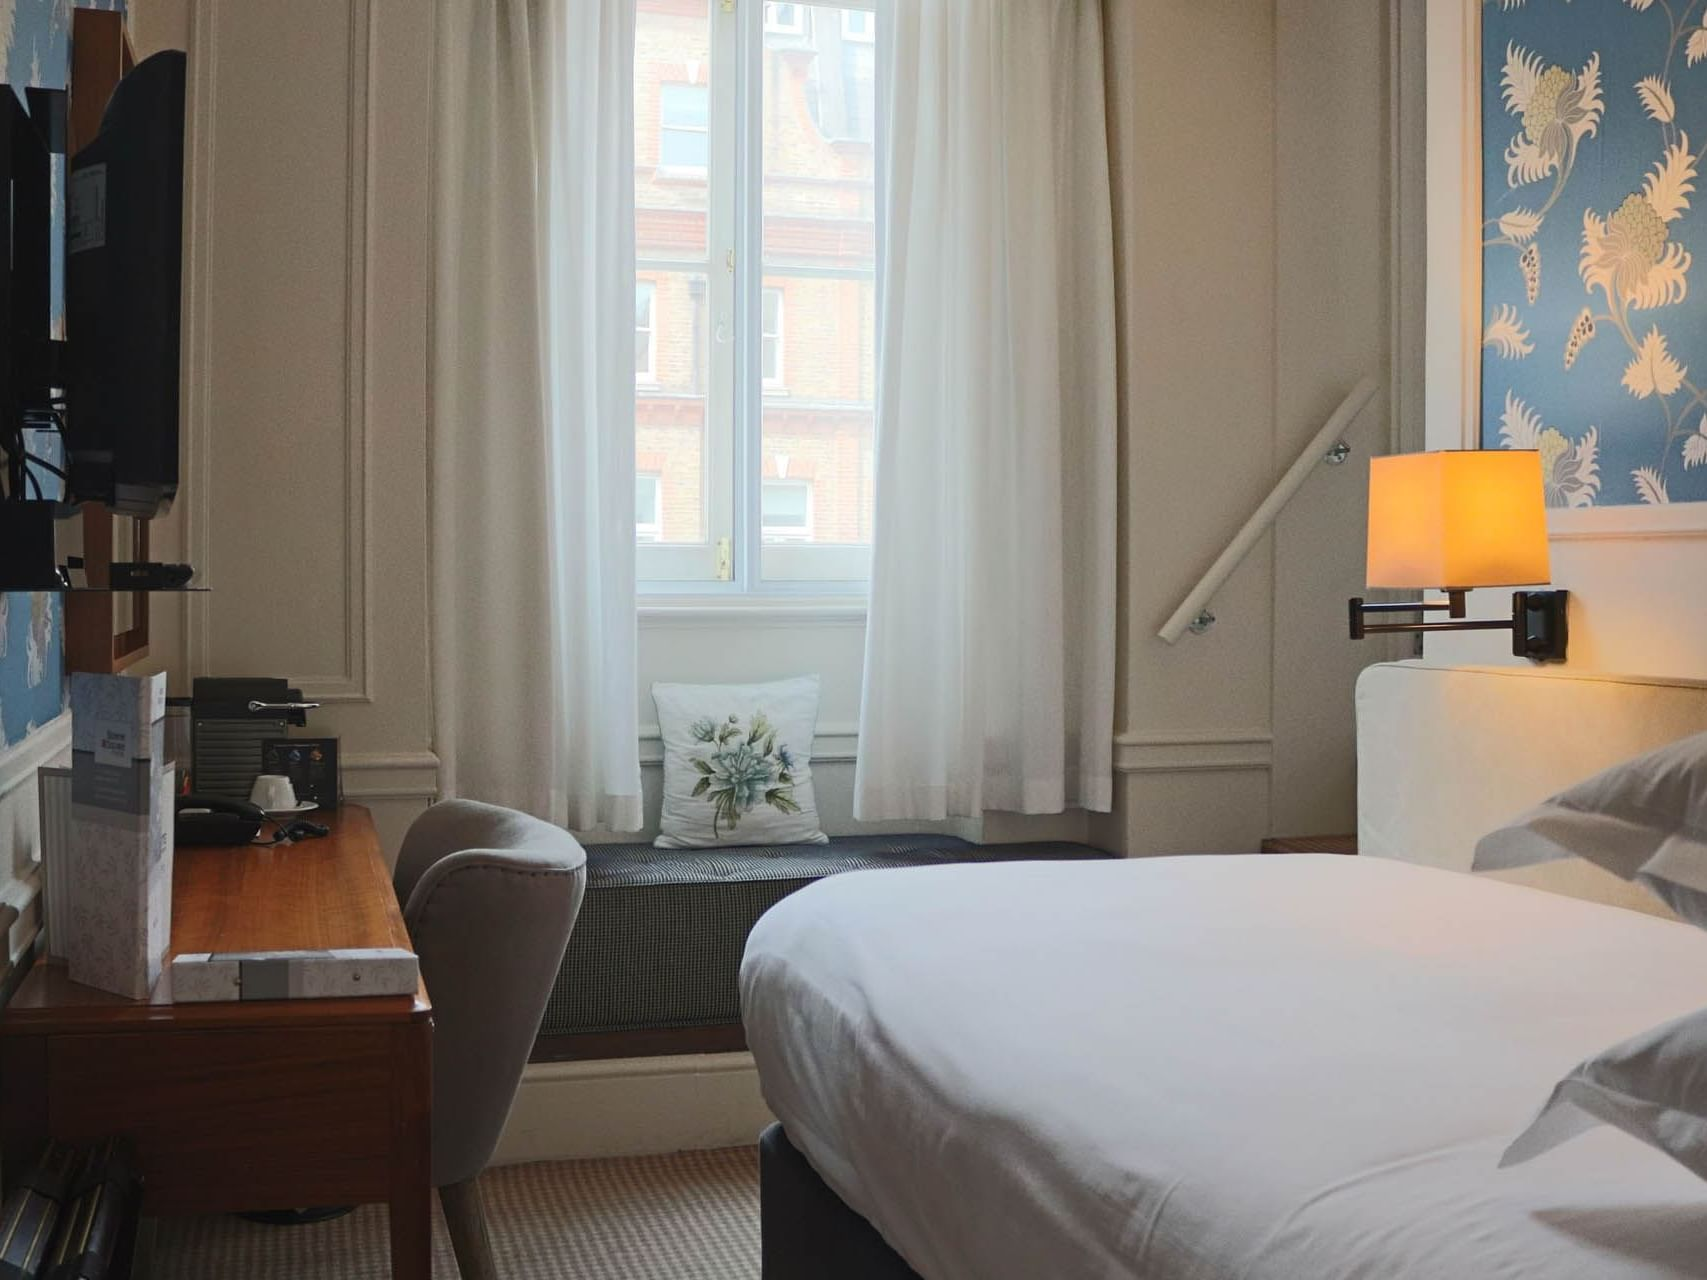 Single rooms with single bed at Sloane Square Hotel